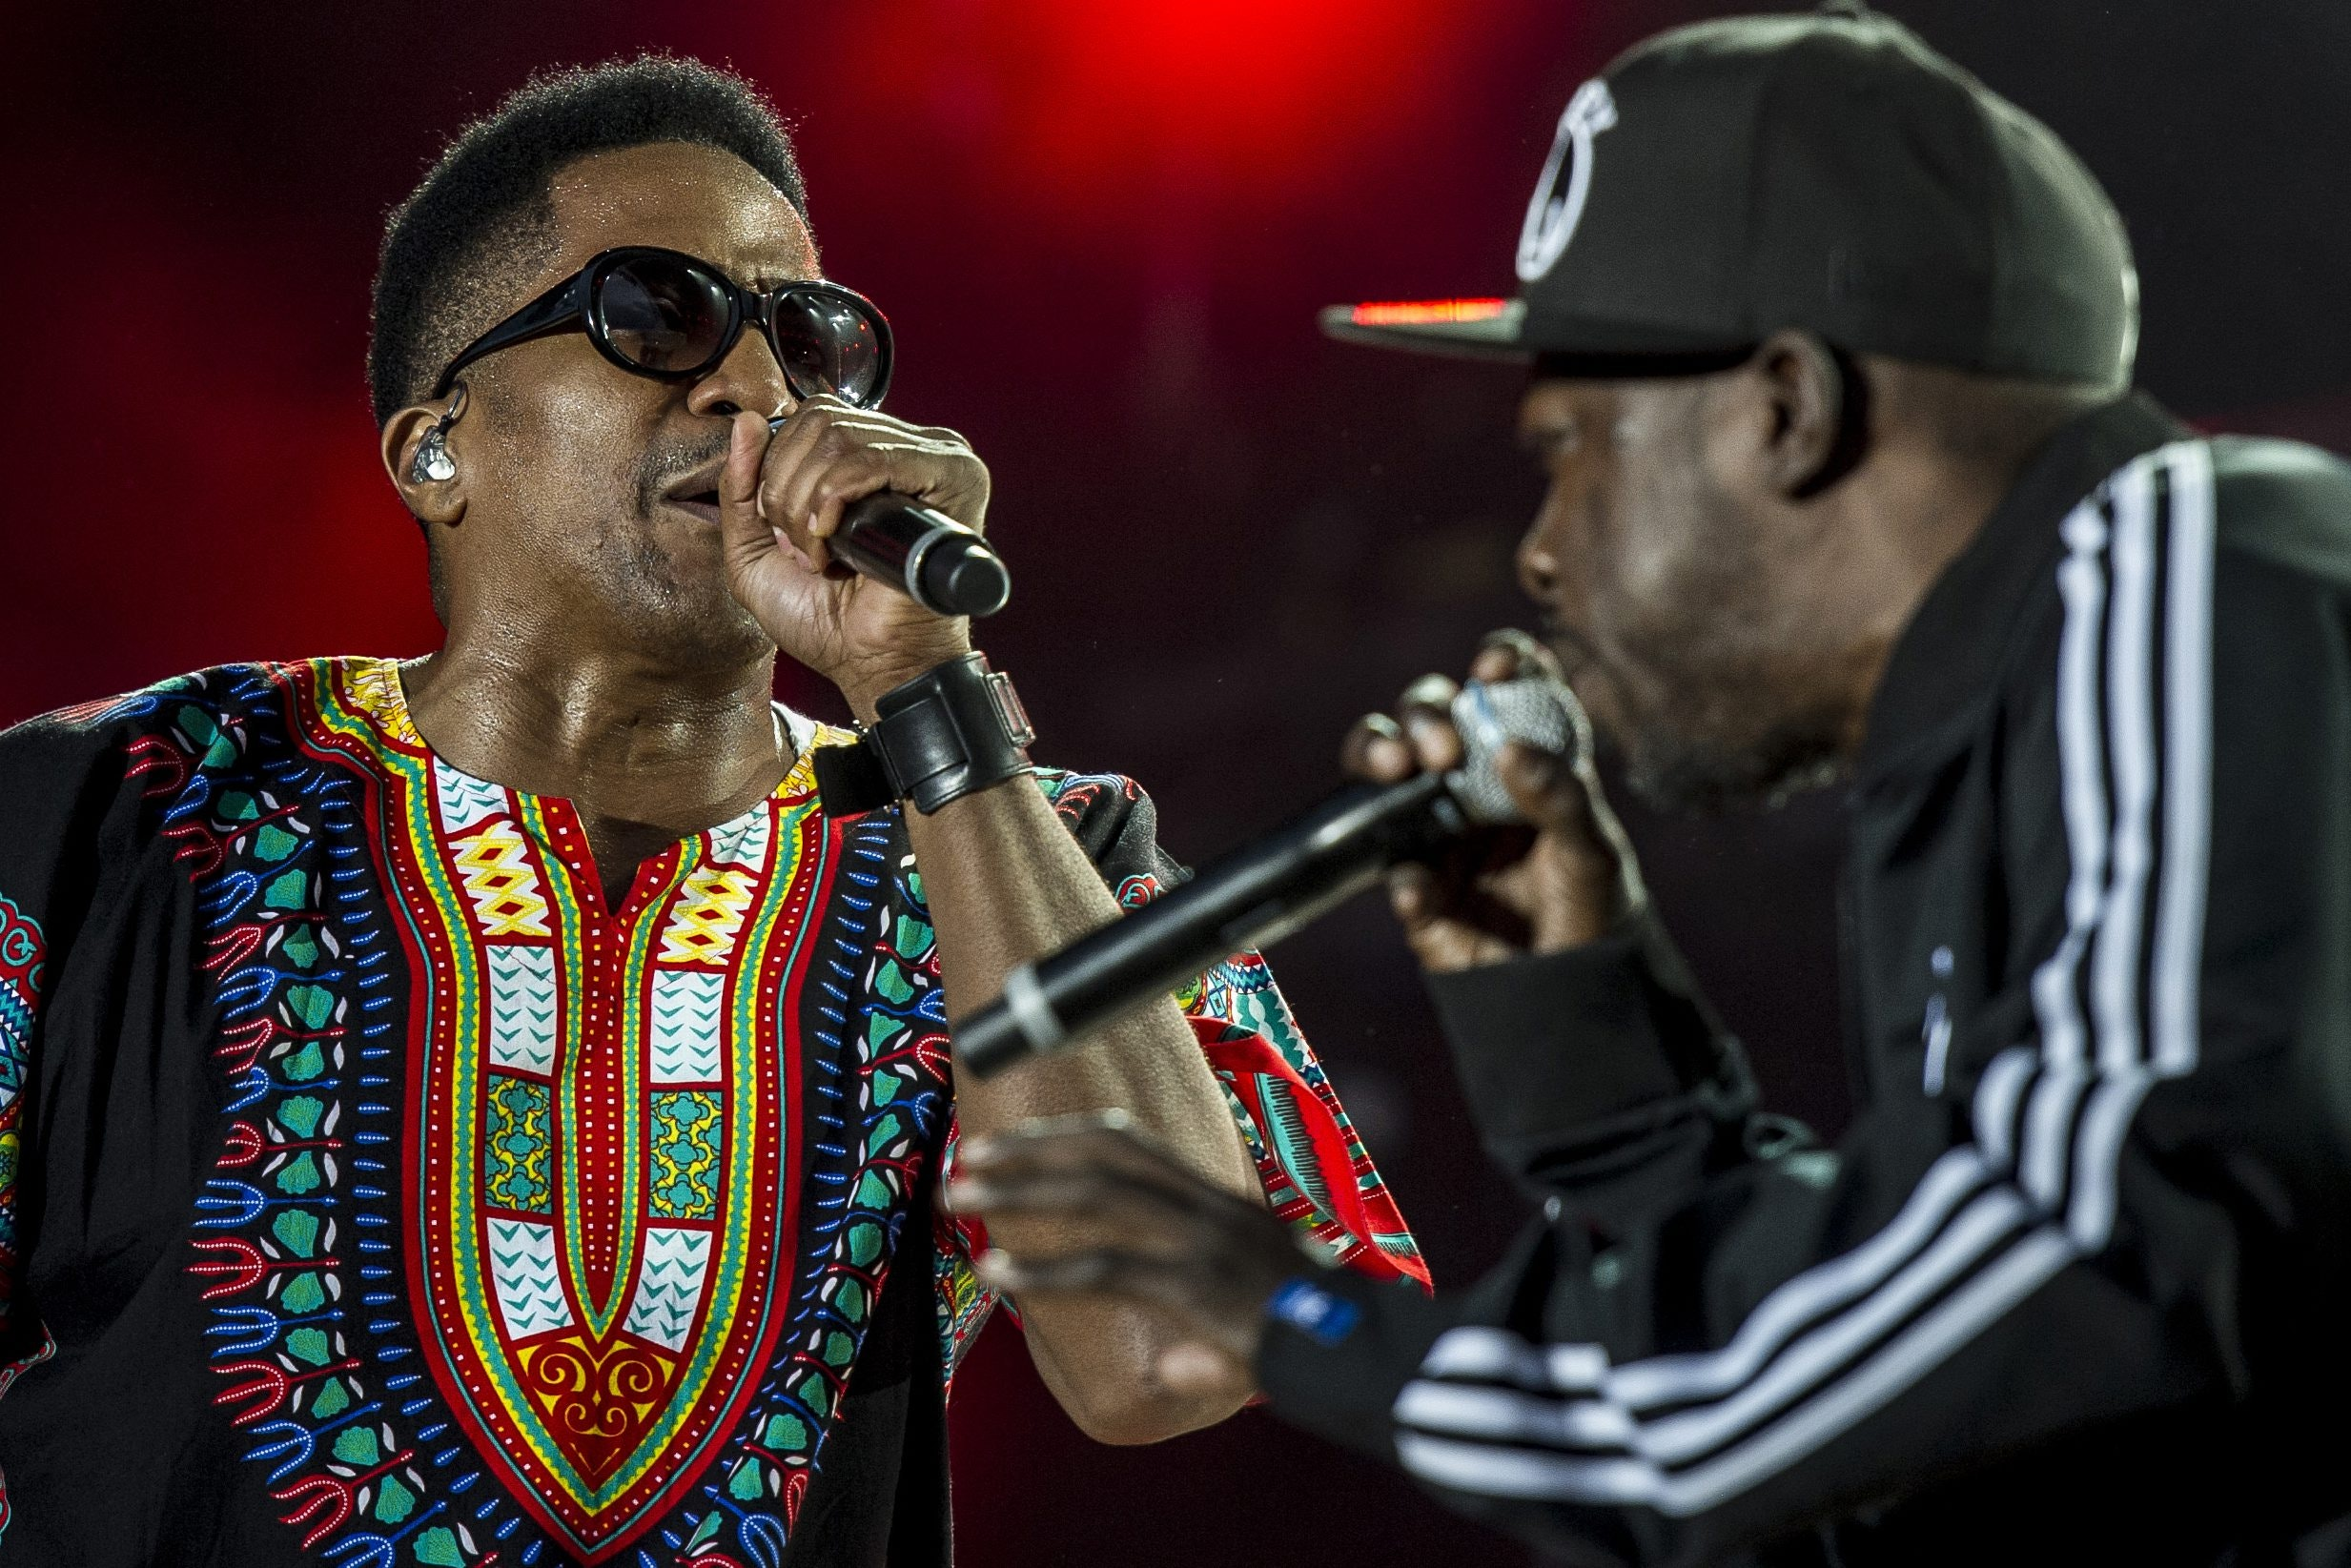 south african hip hop group